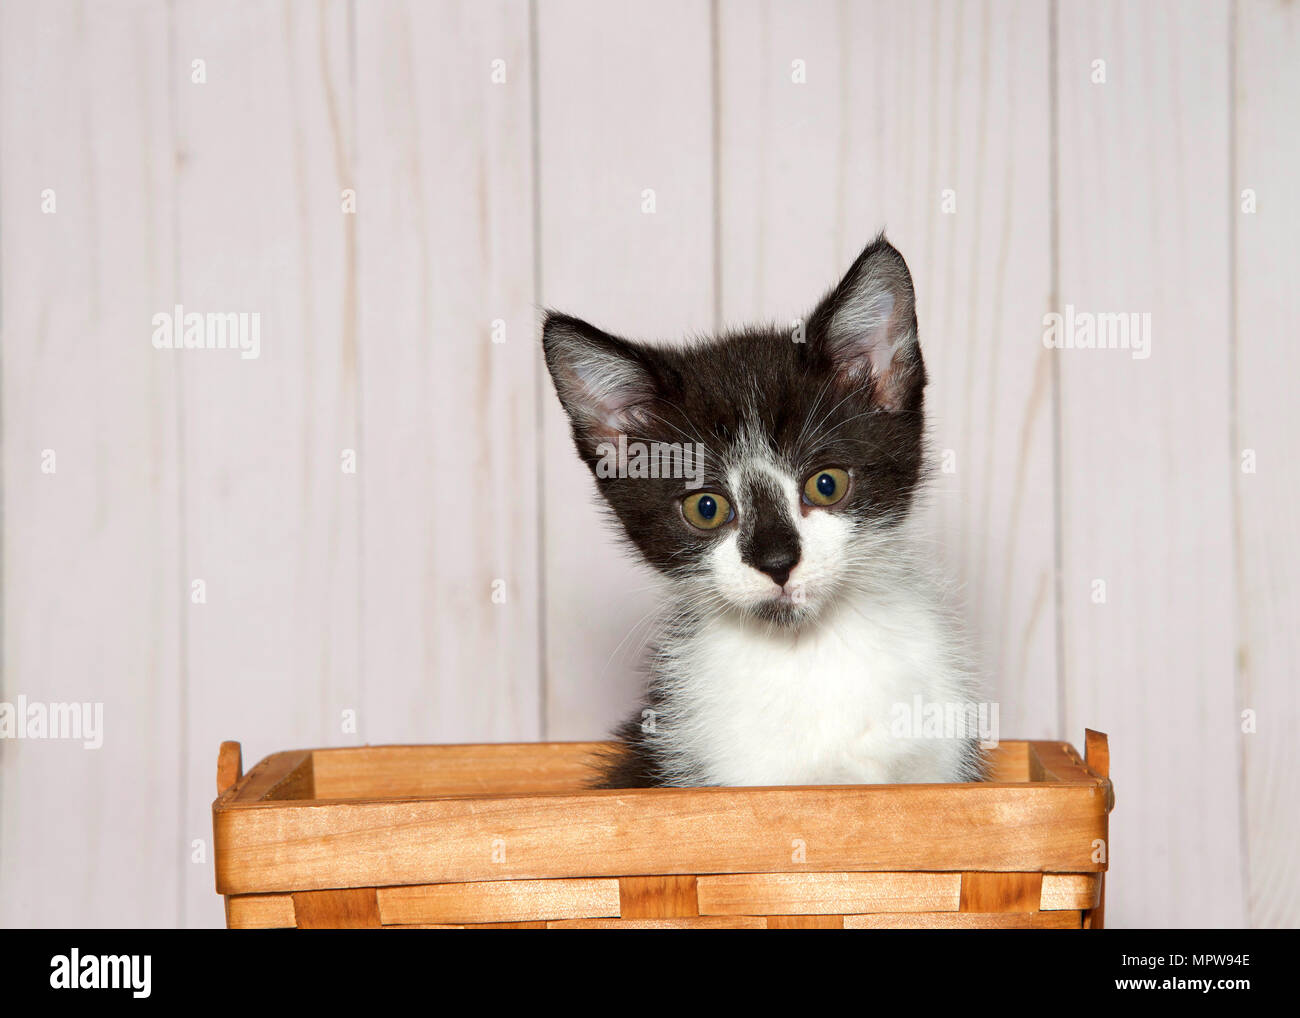 Adorable white kitten with black patches on head sitting in a wood weave basket looking at viewer. Light wood panel wall background with copy space. - Stock Image